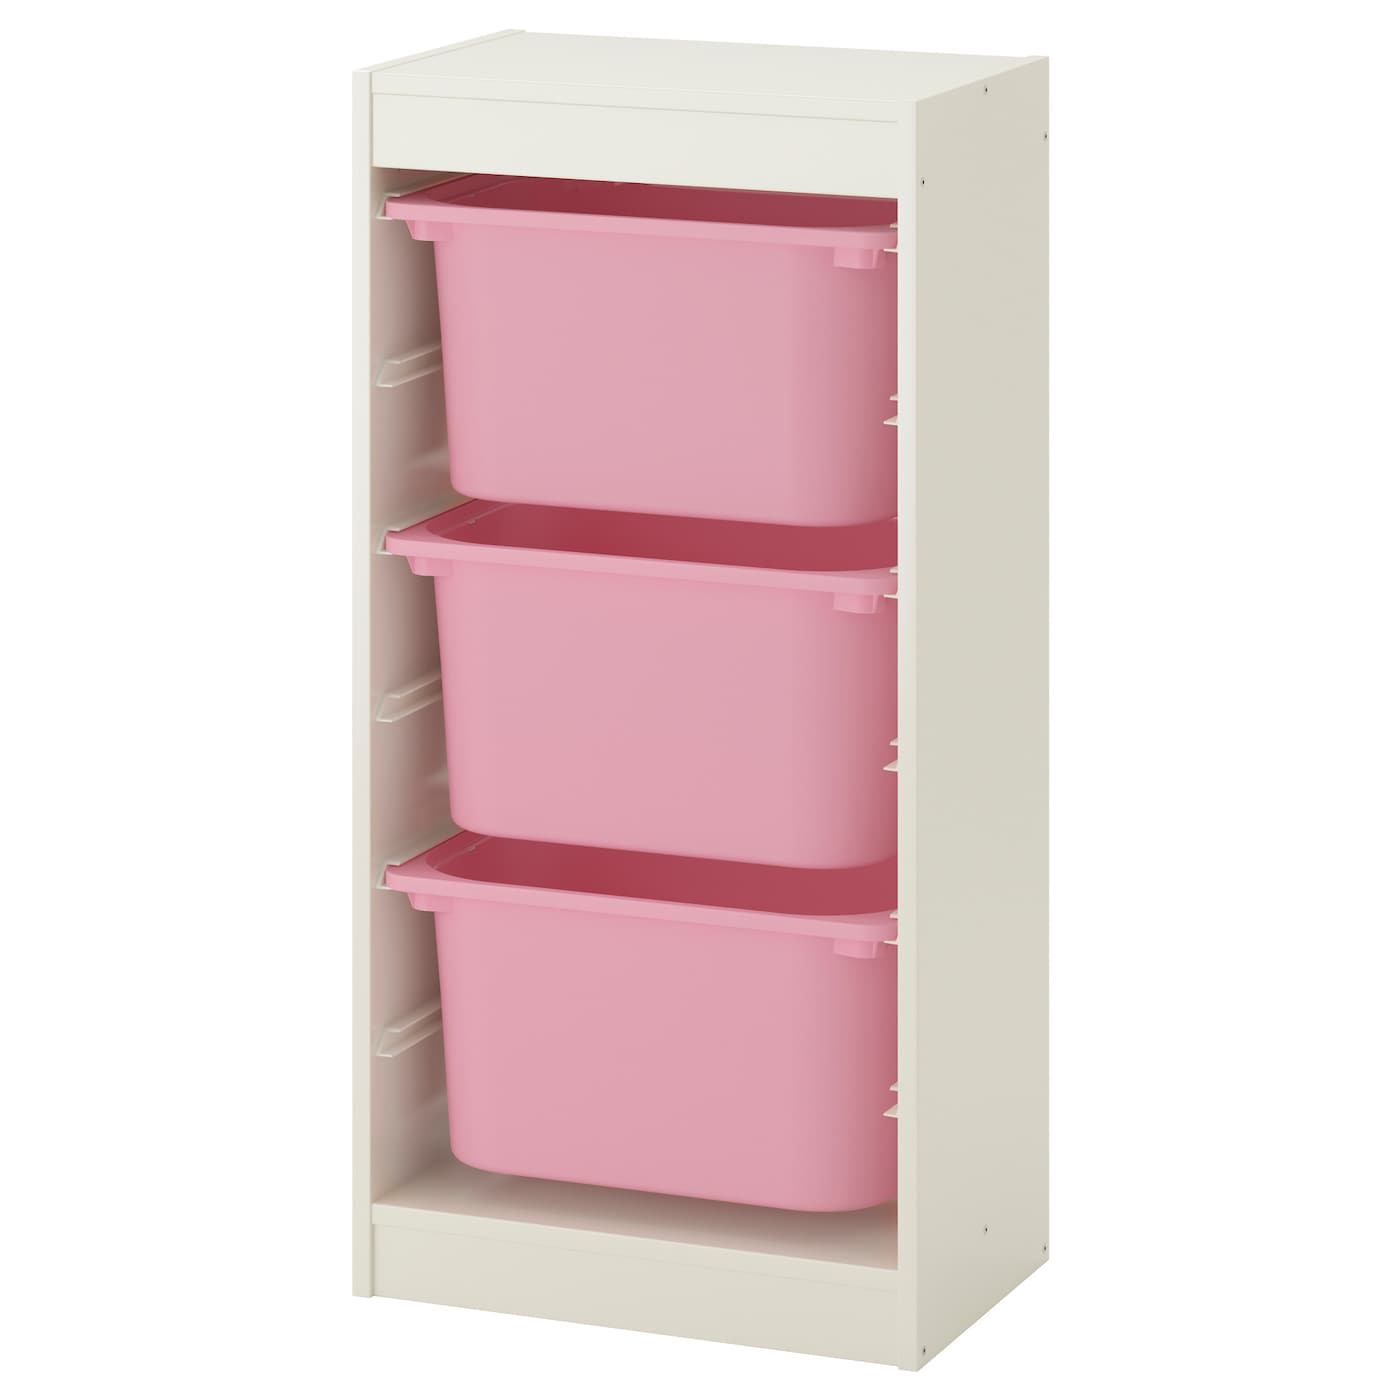 trofast storage combination with boxes white pink 46x30x94 cm ikea. Black Bedroom Furniture Sets. Home Design Ideas